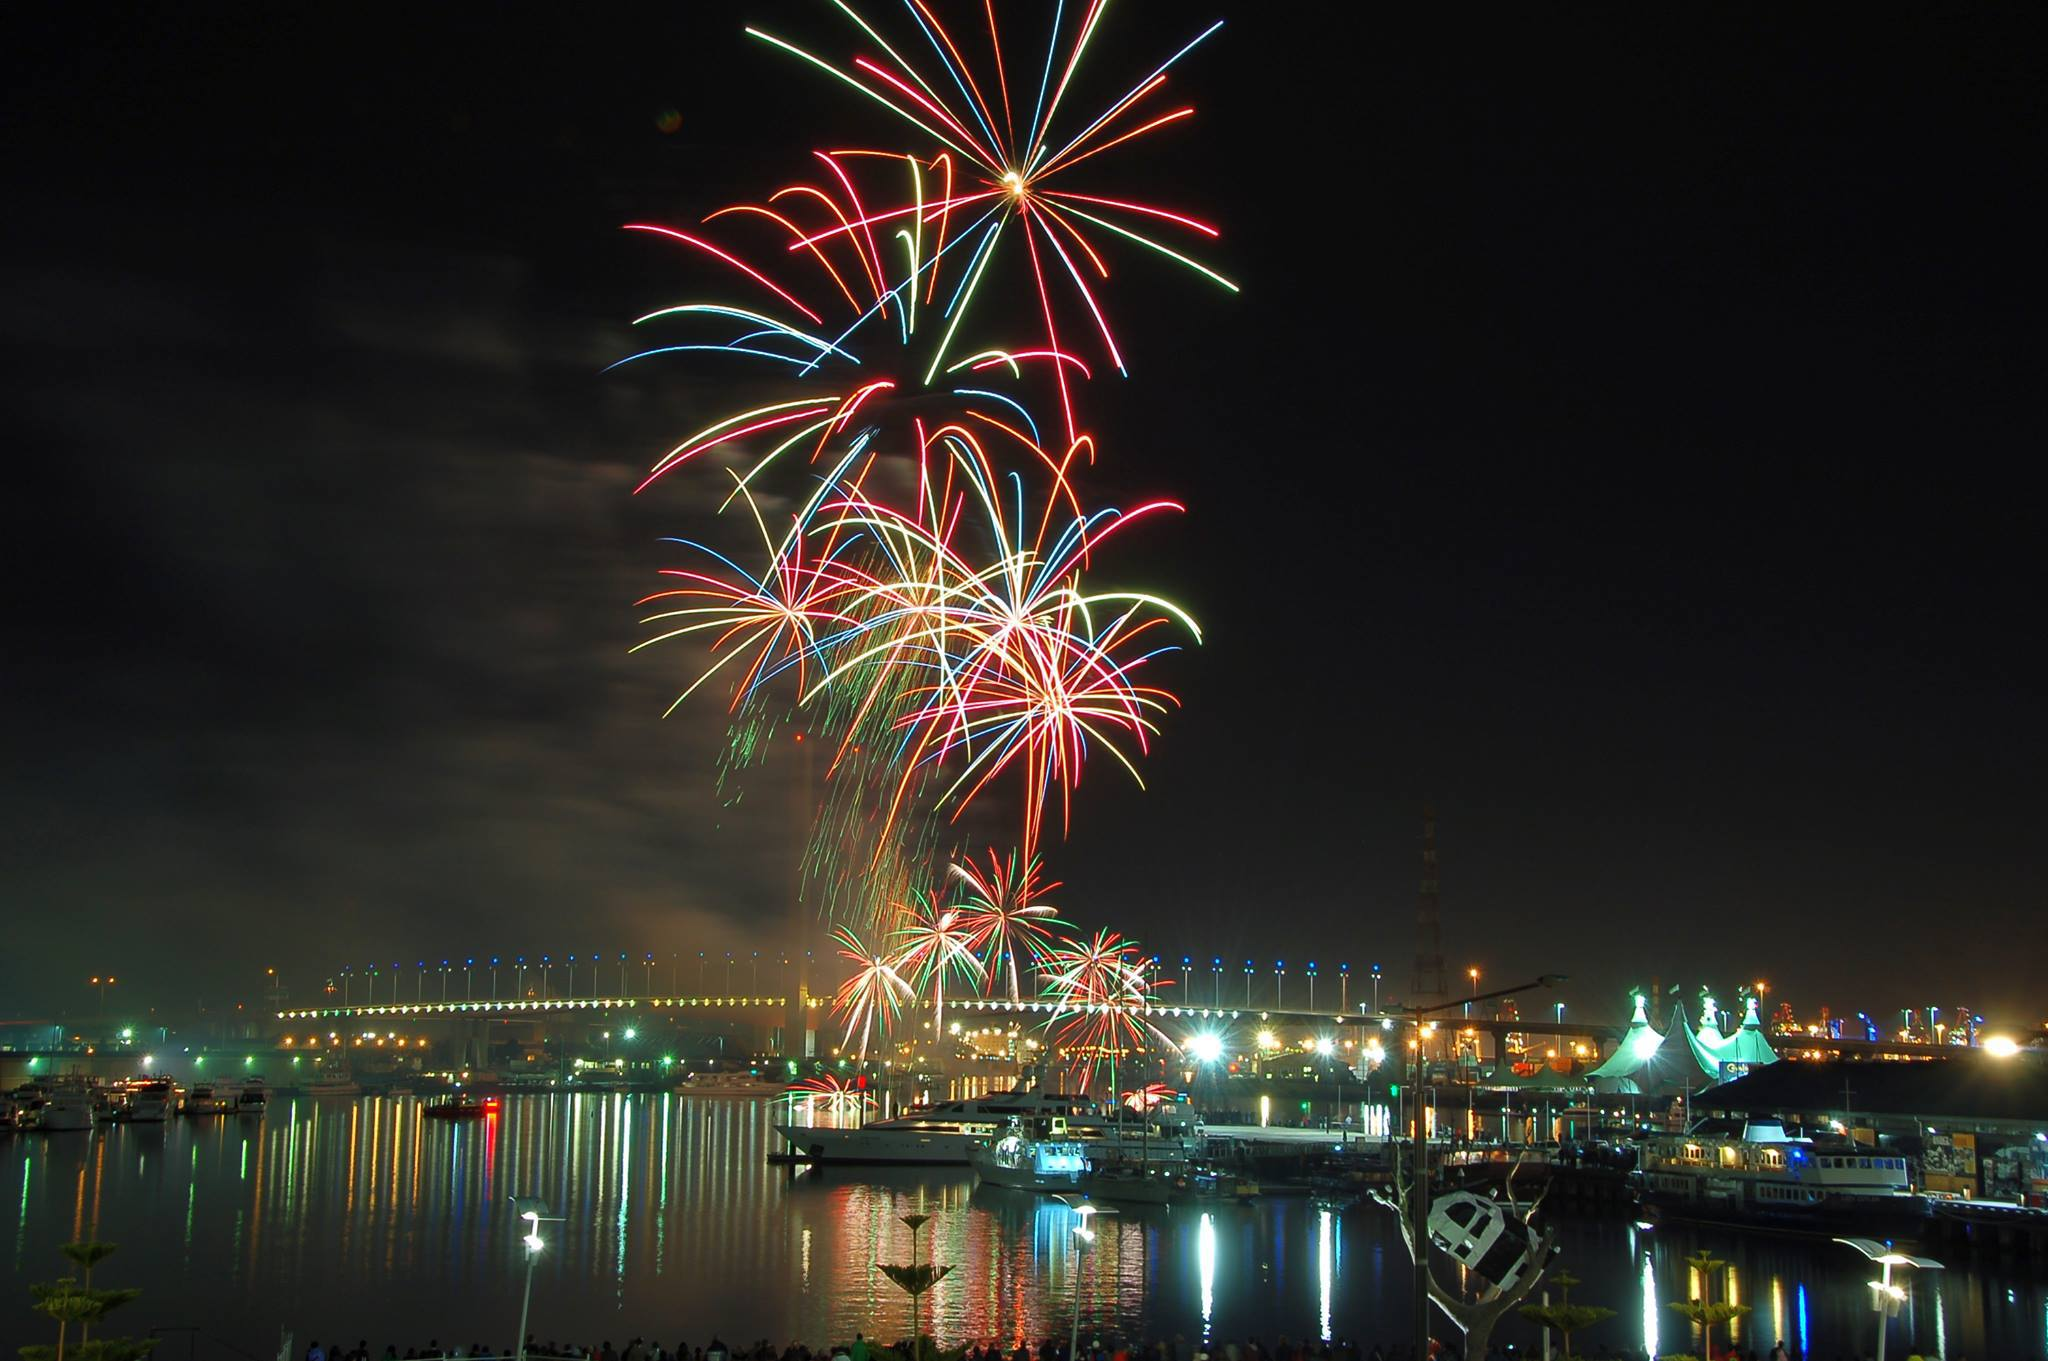 2014 Australia Day Fireworks At Docklands Melbourne